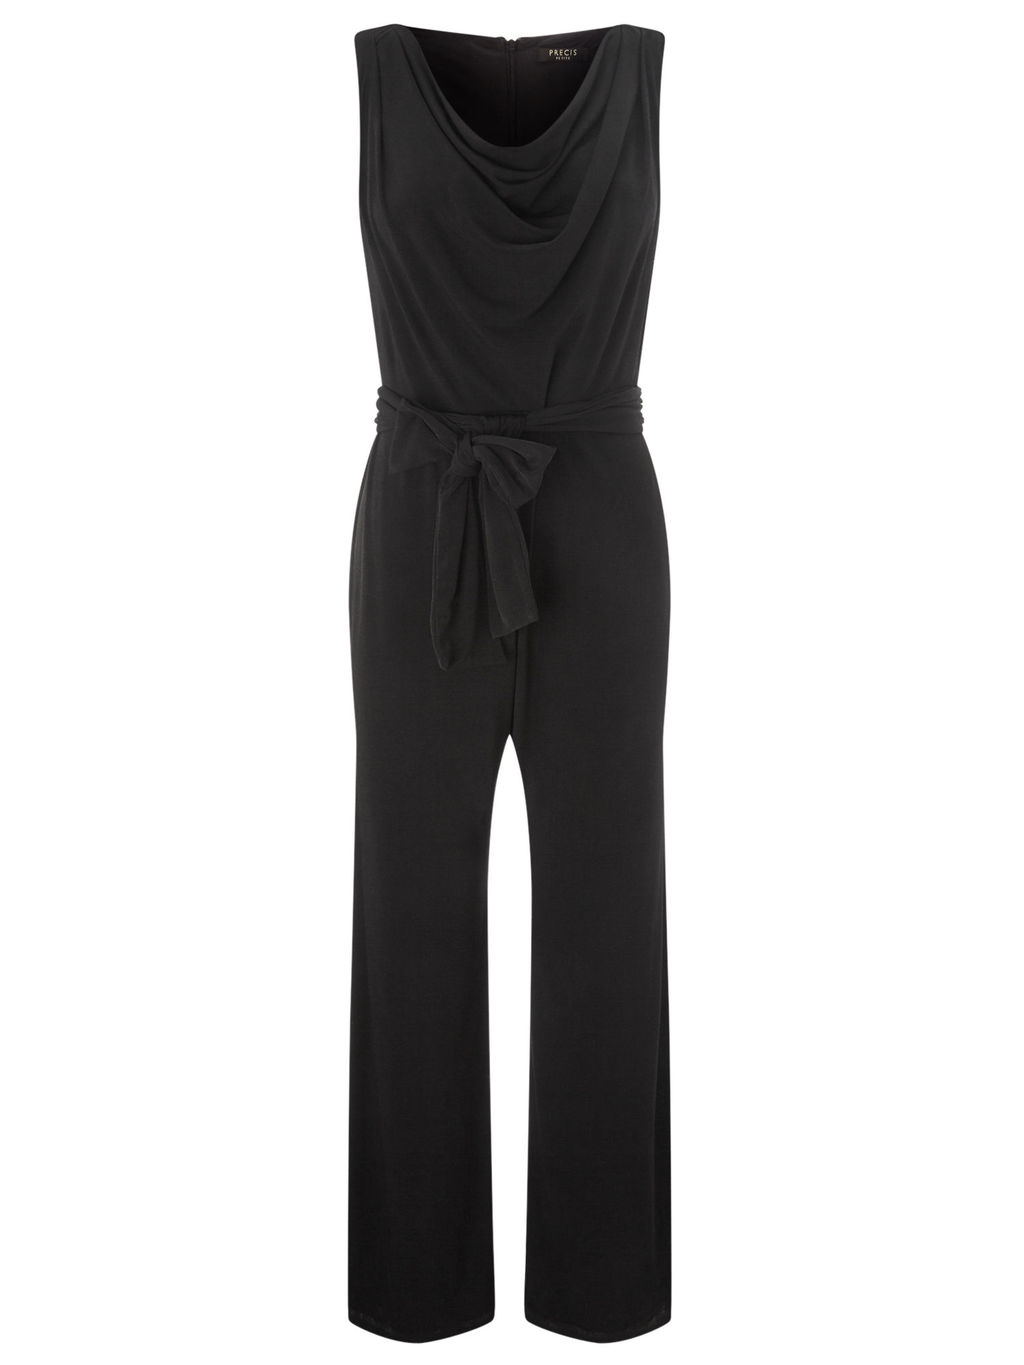 Cowl Neck Jumpsuit - length: standard; neckline: cowl/draped neck; pattern: plain; sleeve style: sleeveless; waist detail: belted waist/tie at waist/drawstring; predominant colour: black; occasions: evening; fit: body skimming; fibres: polyester/polyamide - stretch; sleeve length: sleeveless; style: jumpsuit; pattern type: fabric; texture group: jersey - stretchy/drapey; season: a/w 2015